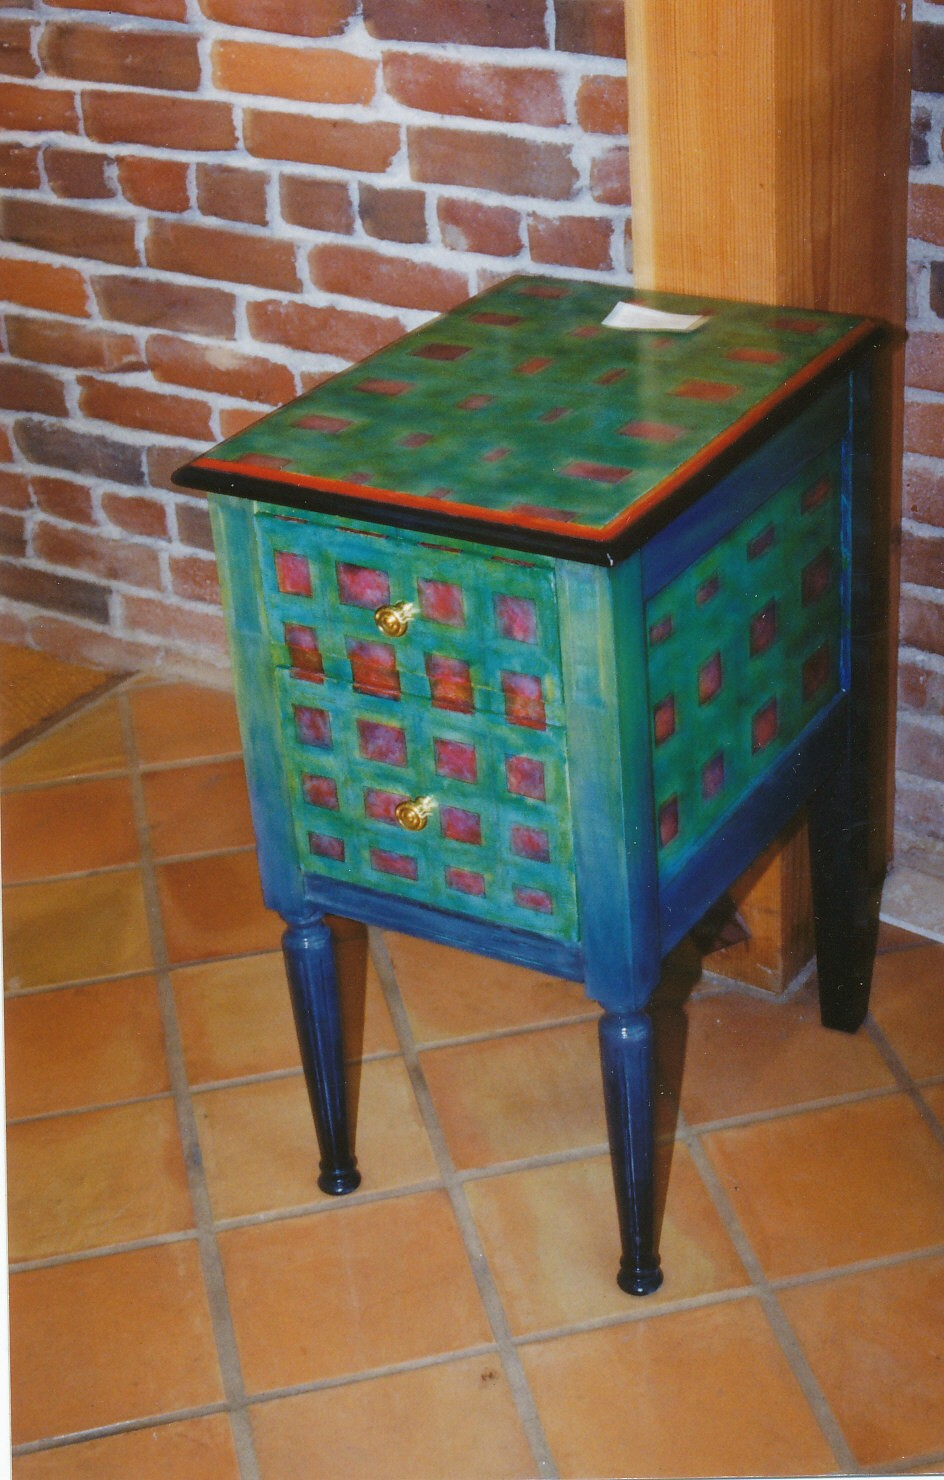 David W. Douthat custom painted end table1986